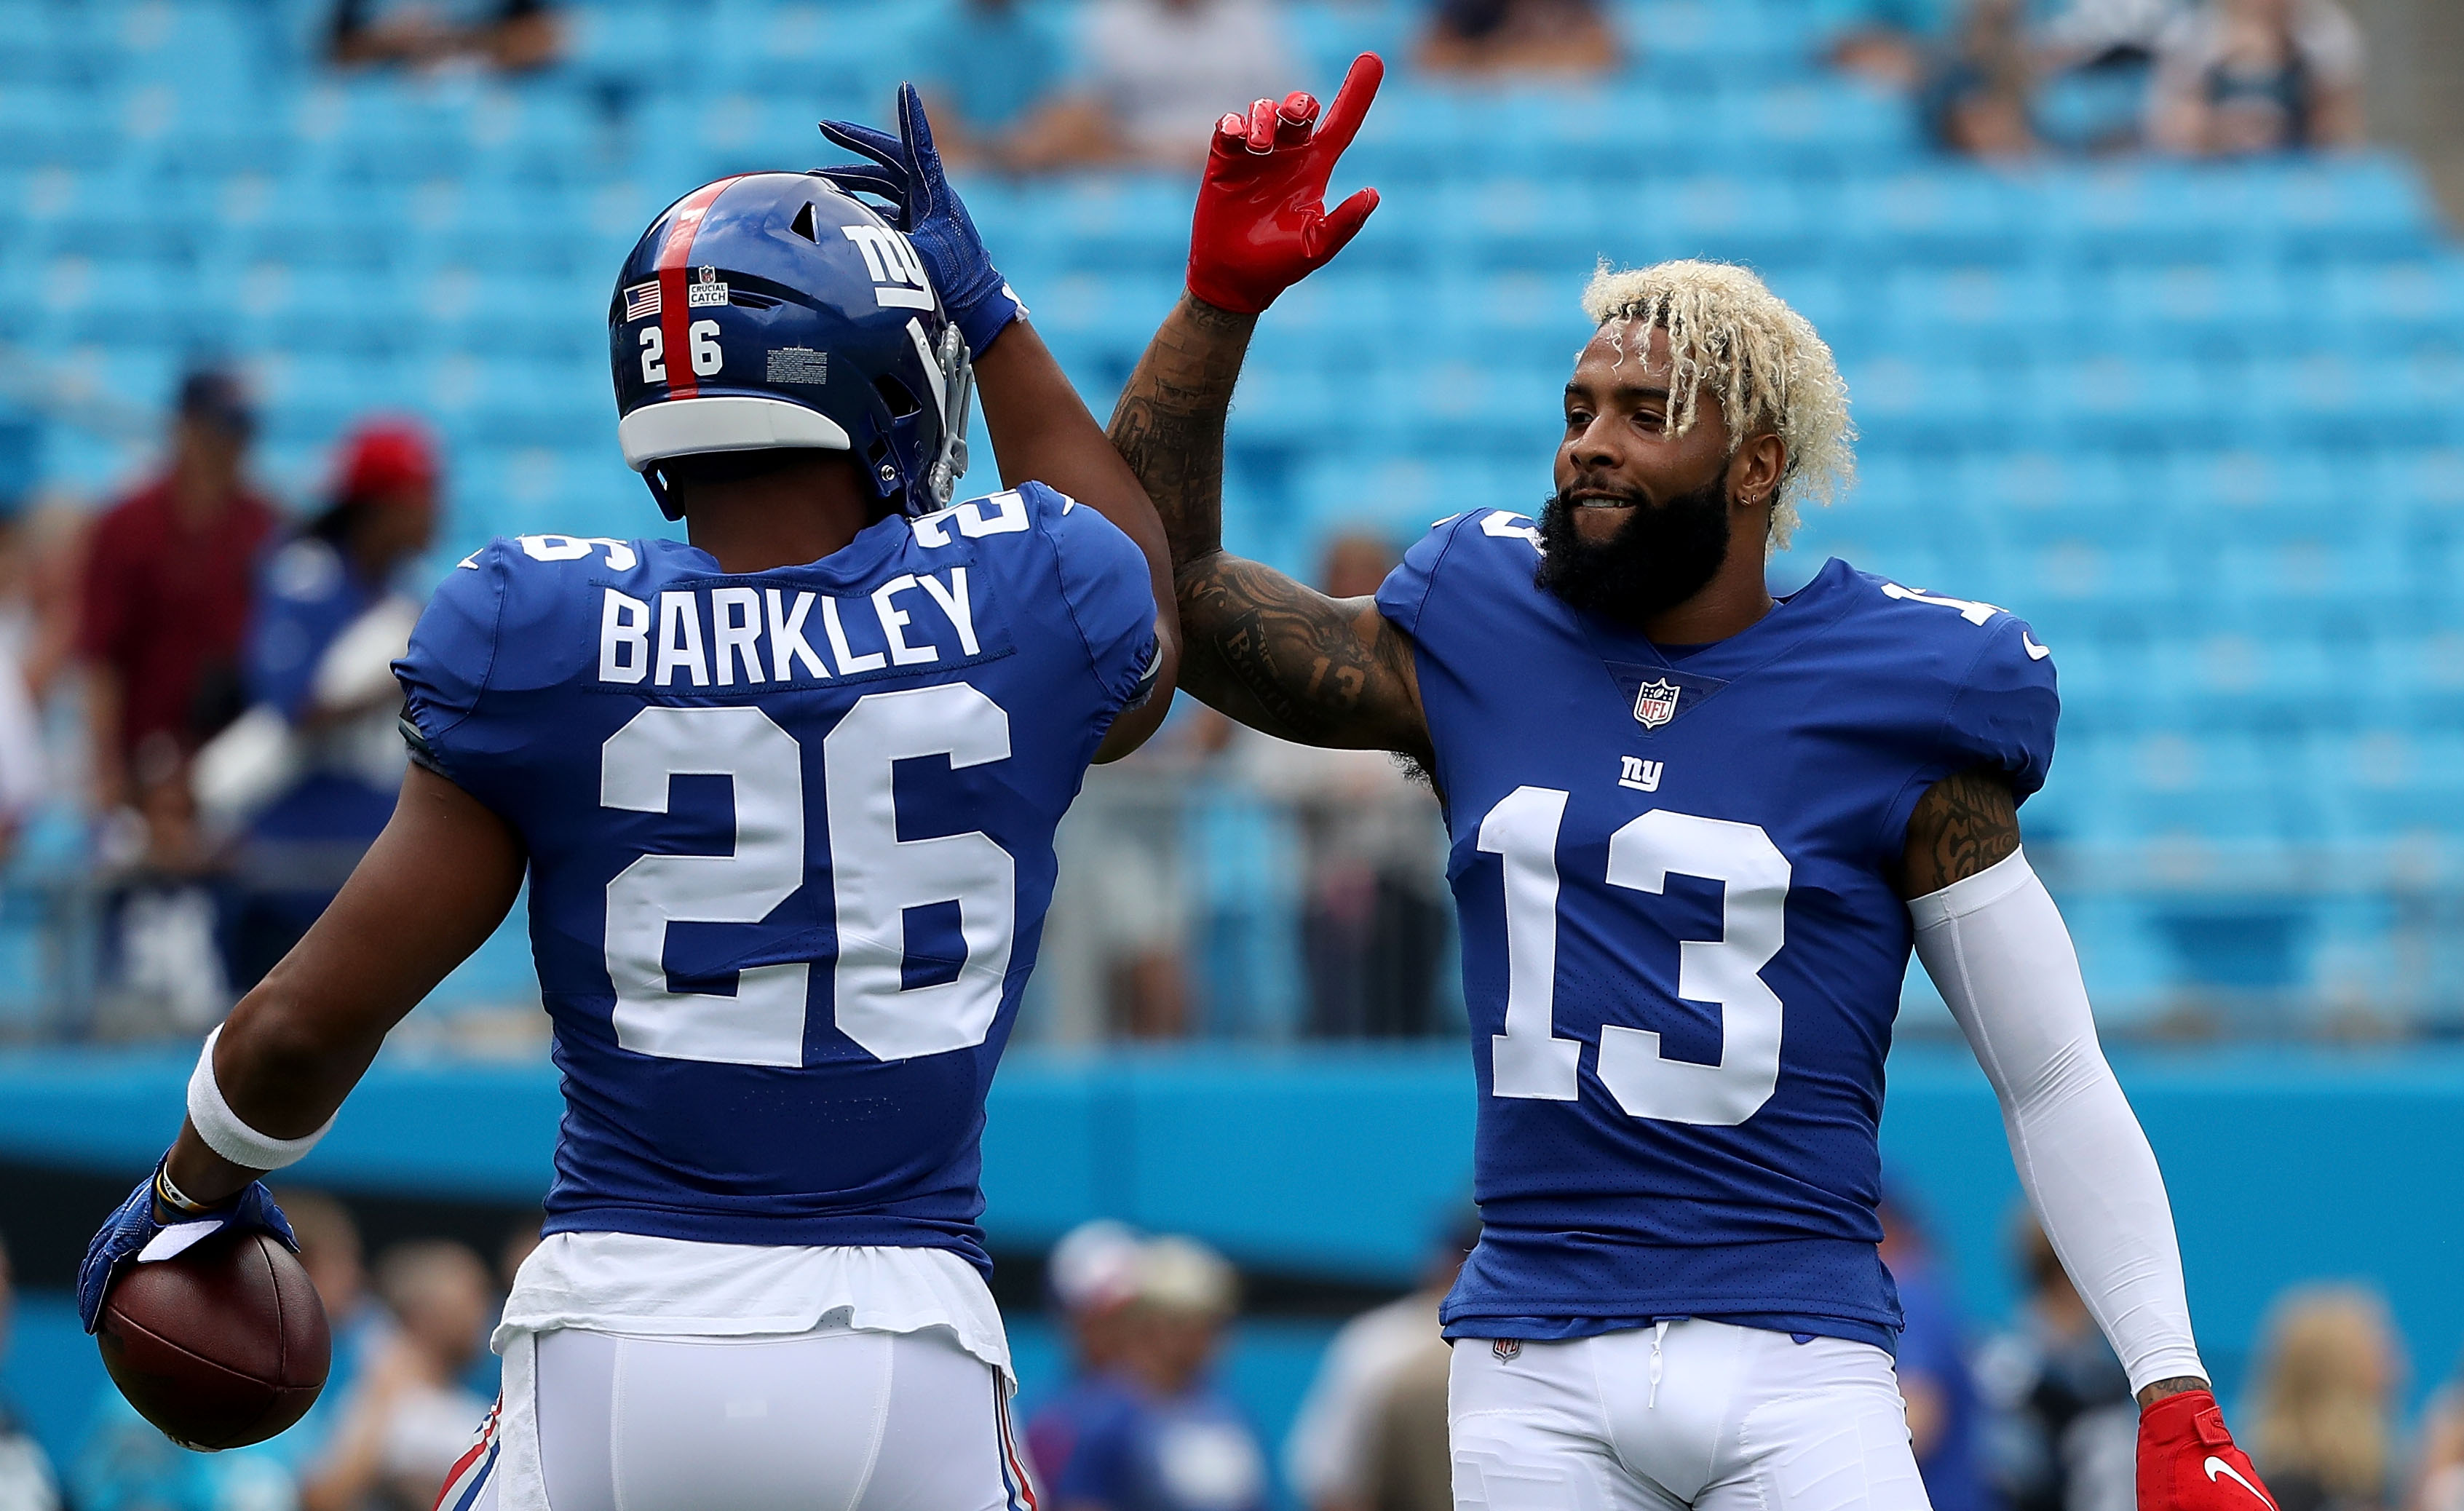 Saquon Barkley, Odell Beckham Jr. plan to rehab together this offseason